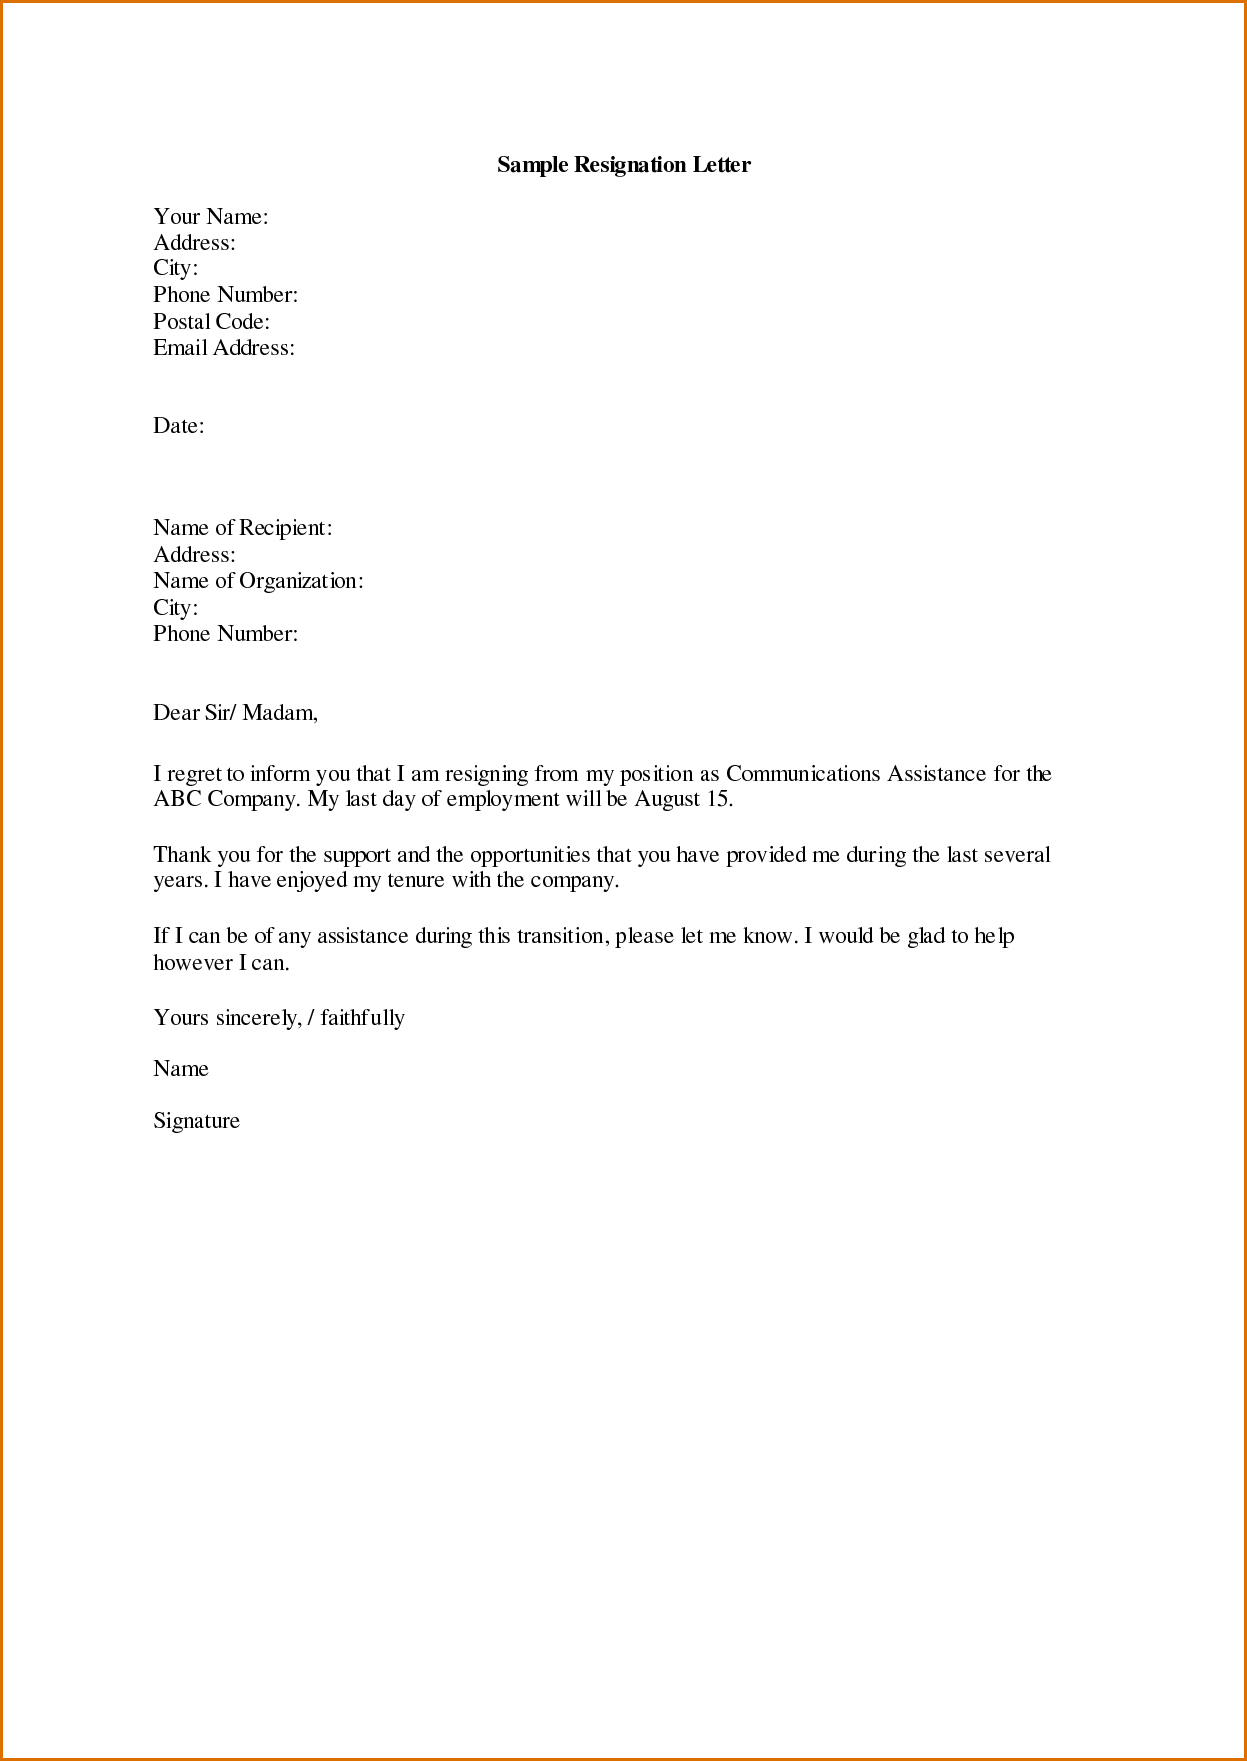 letter size mail dimensional standards template - sample resignation letter template gallery template